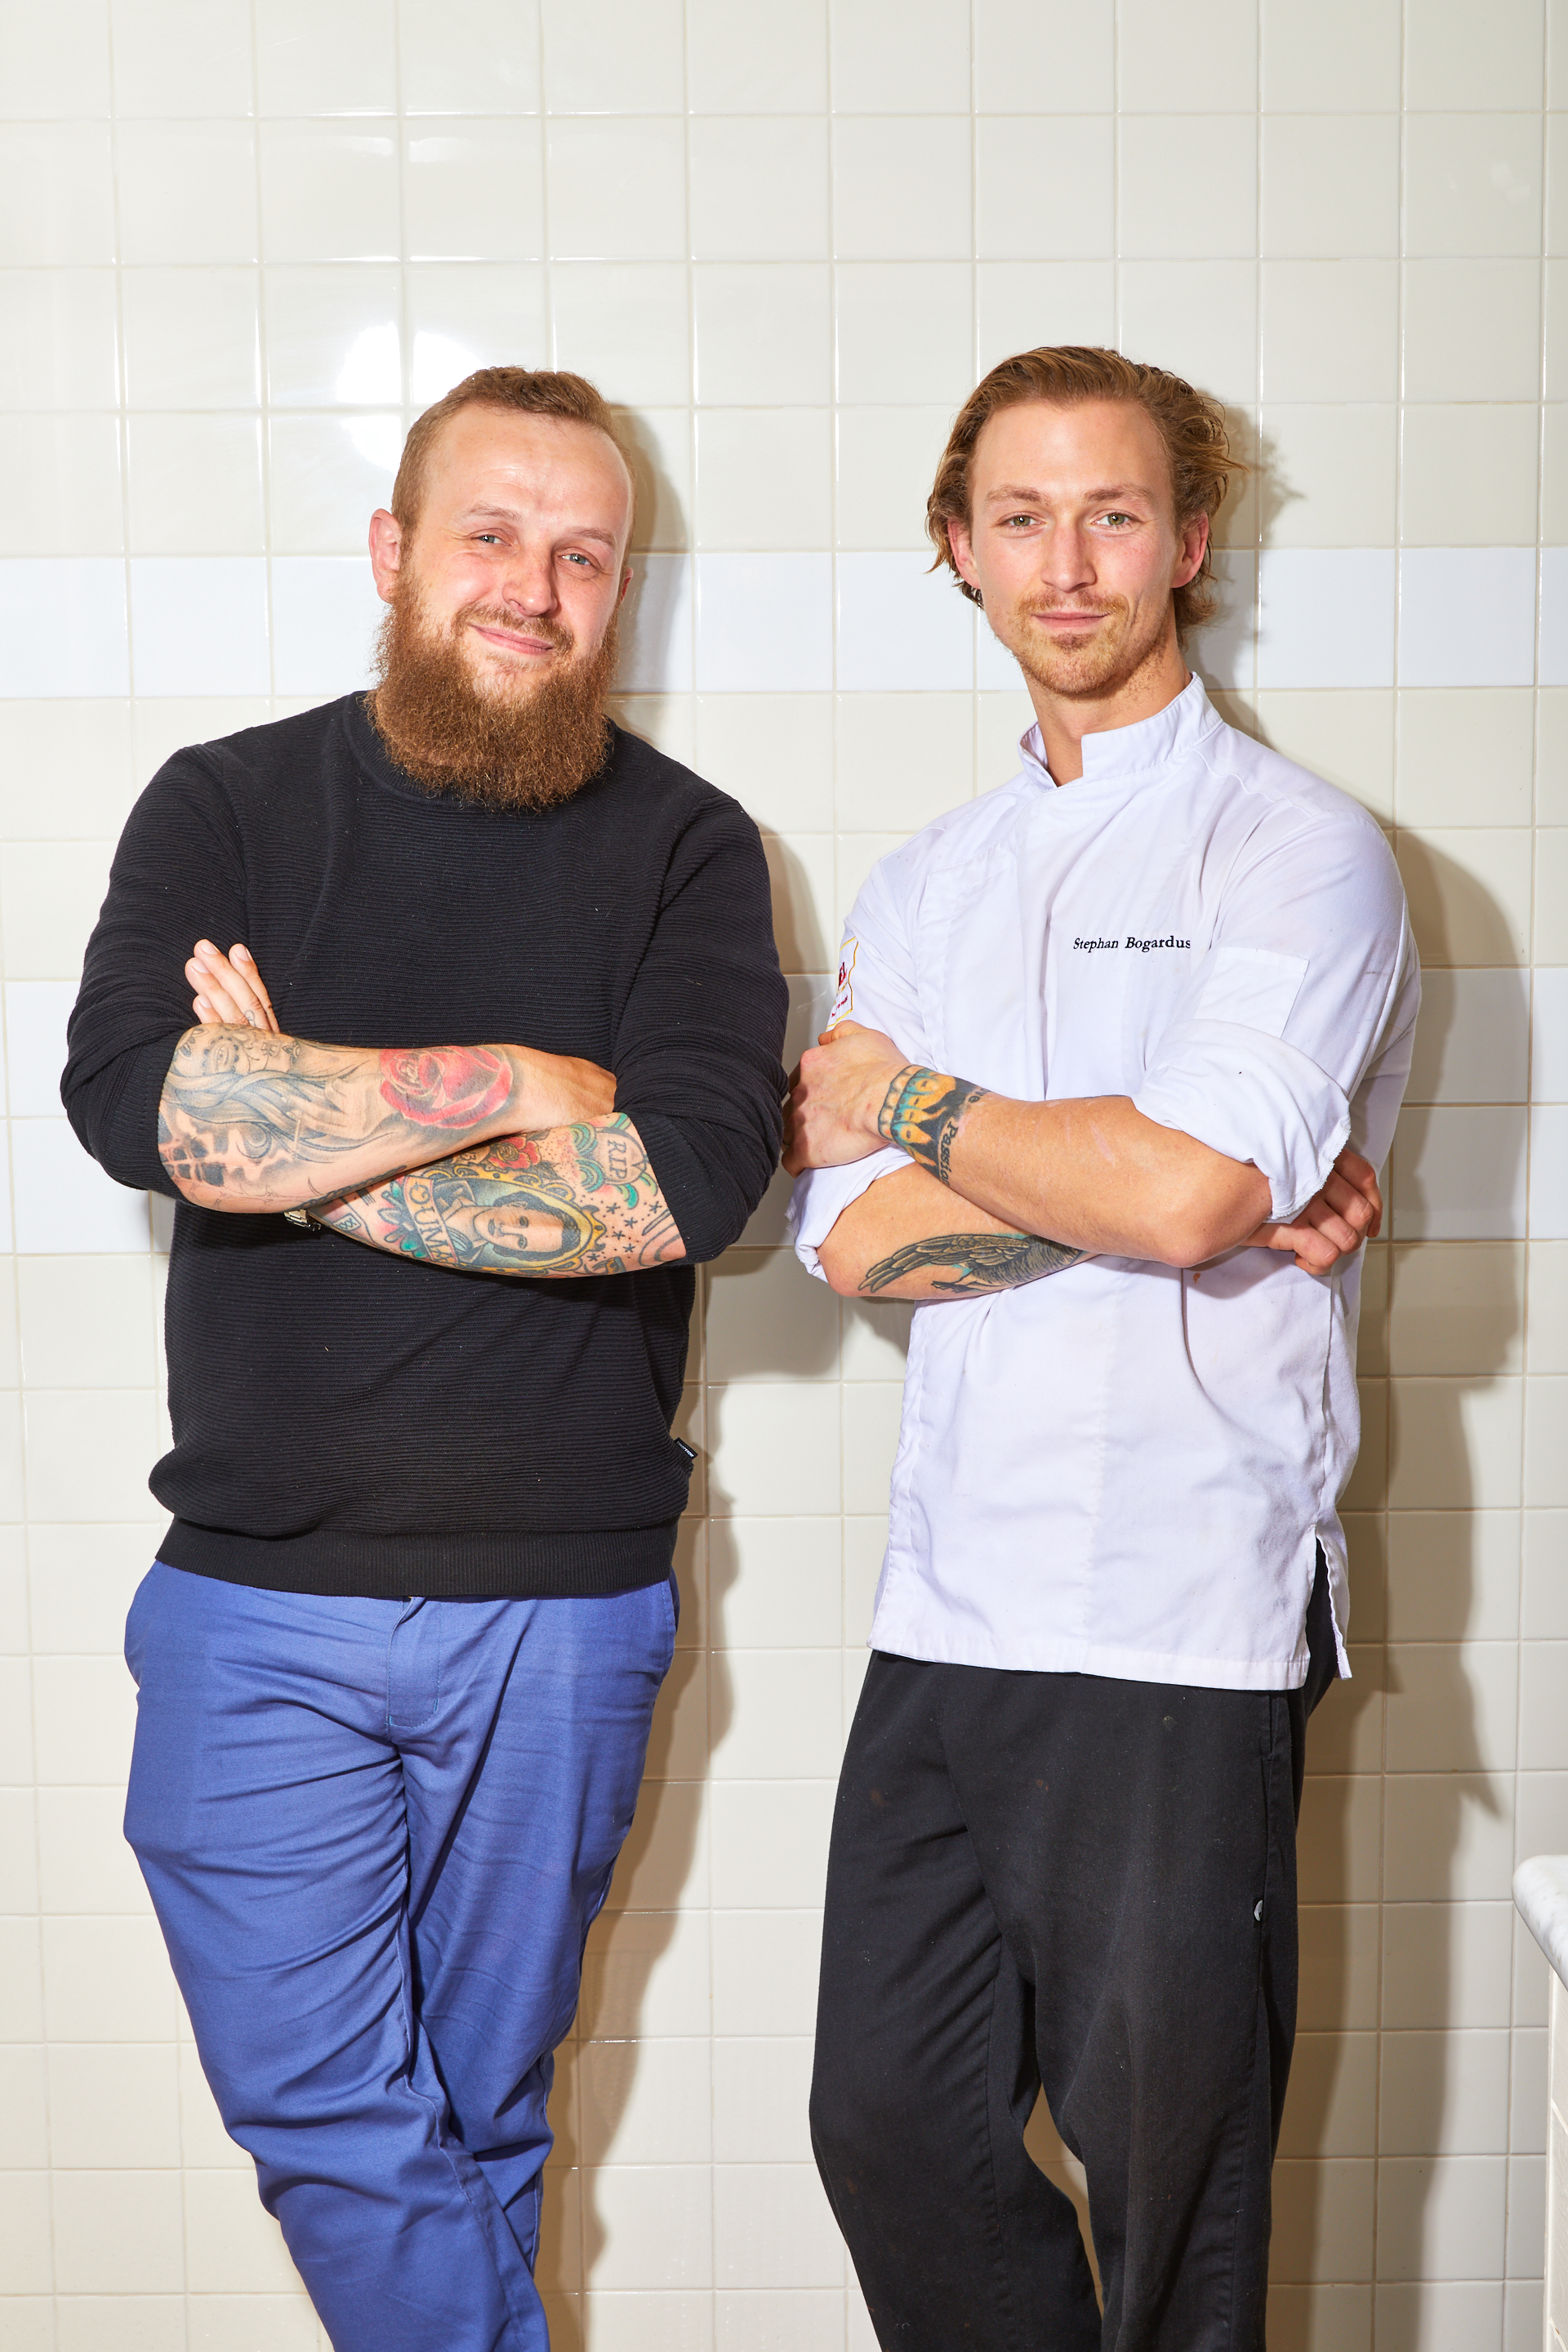 GM Derrick Erwee and Chef Stephan Bogardus